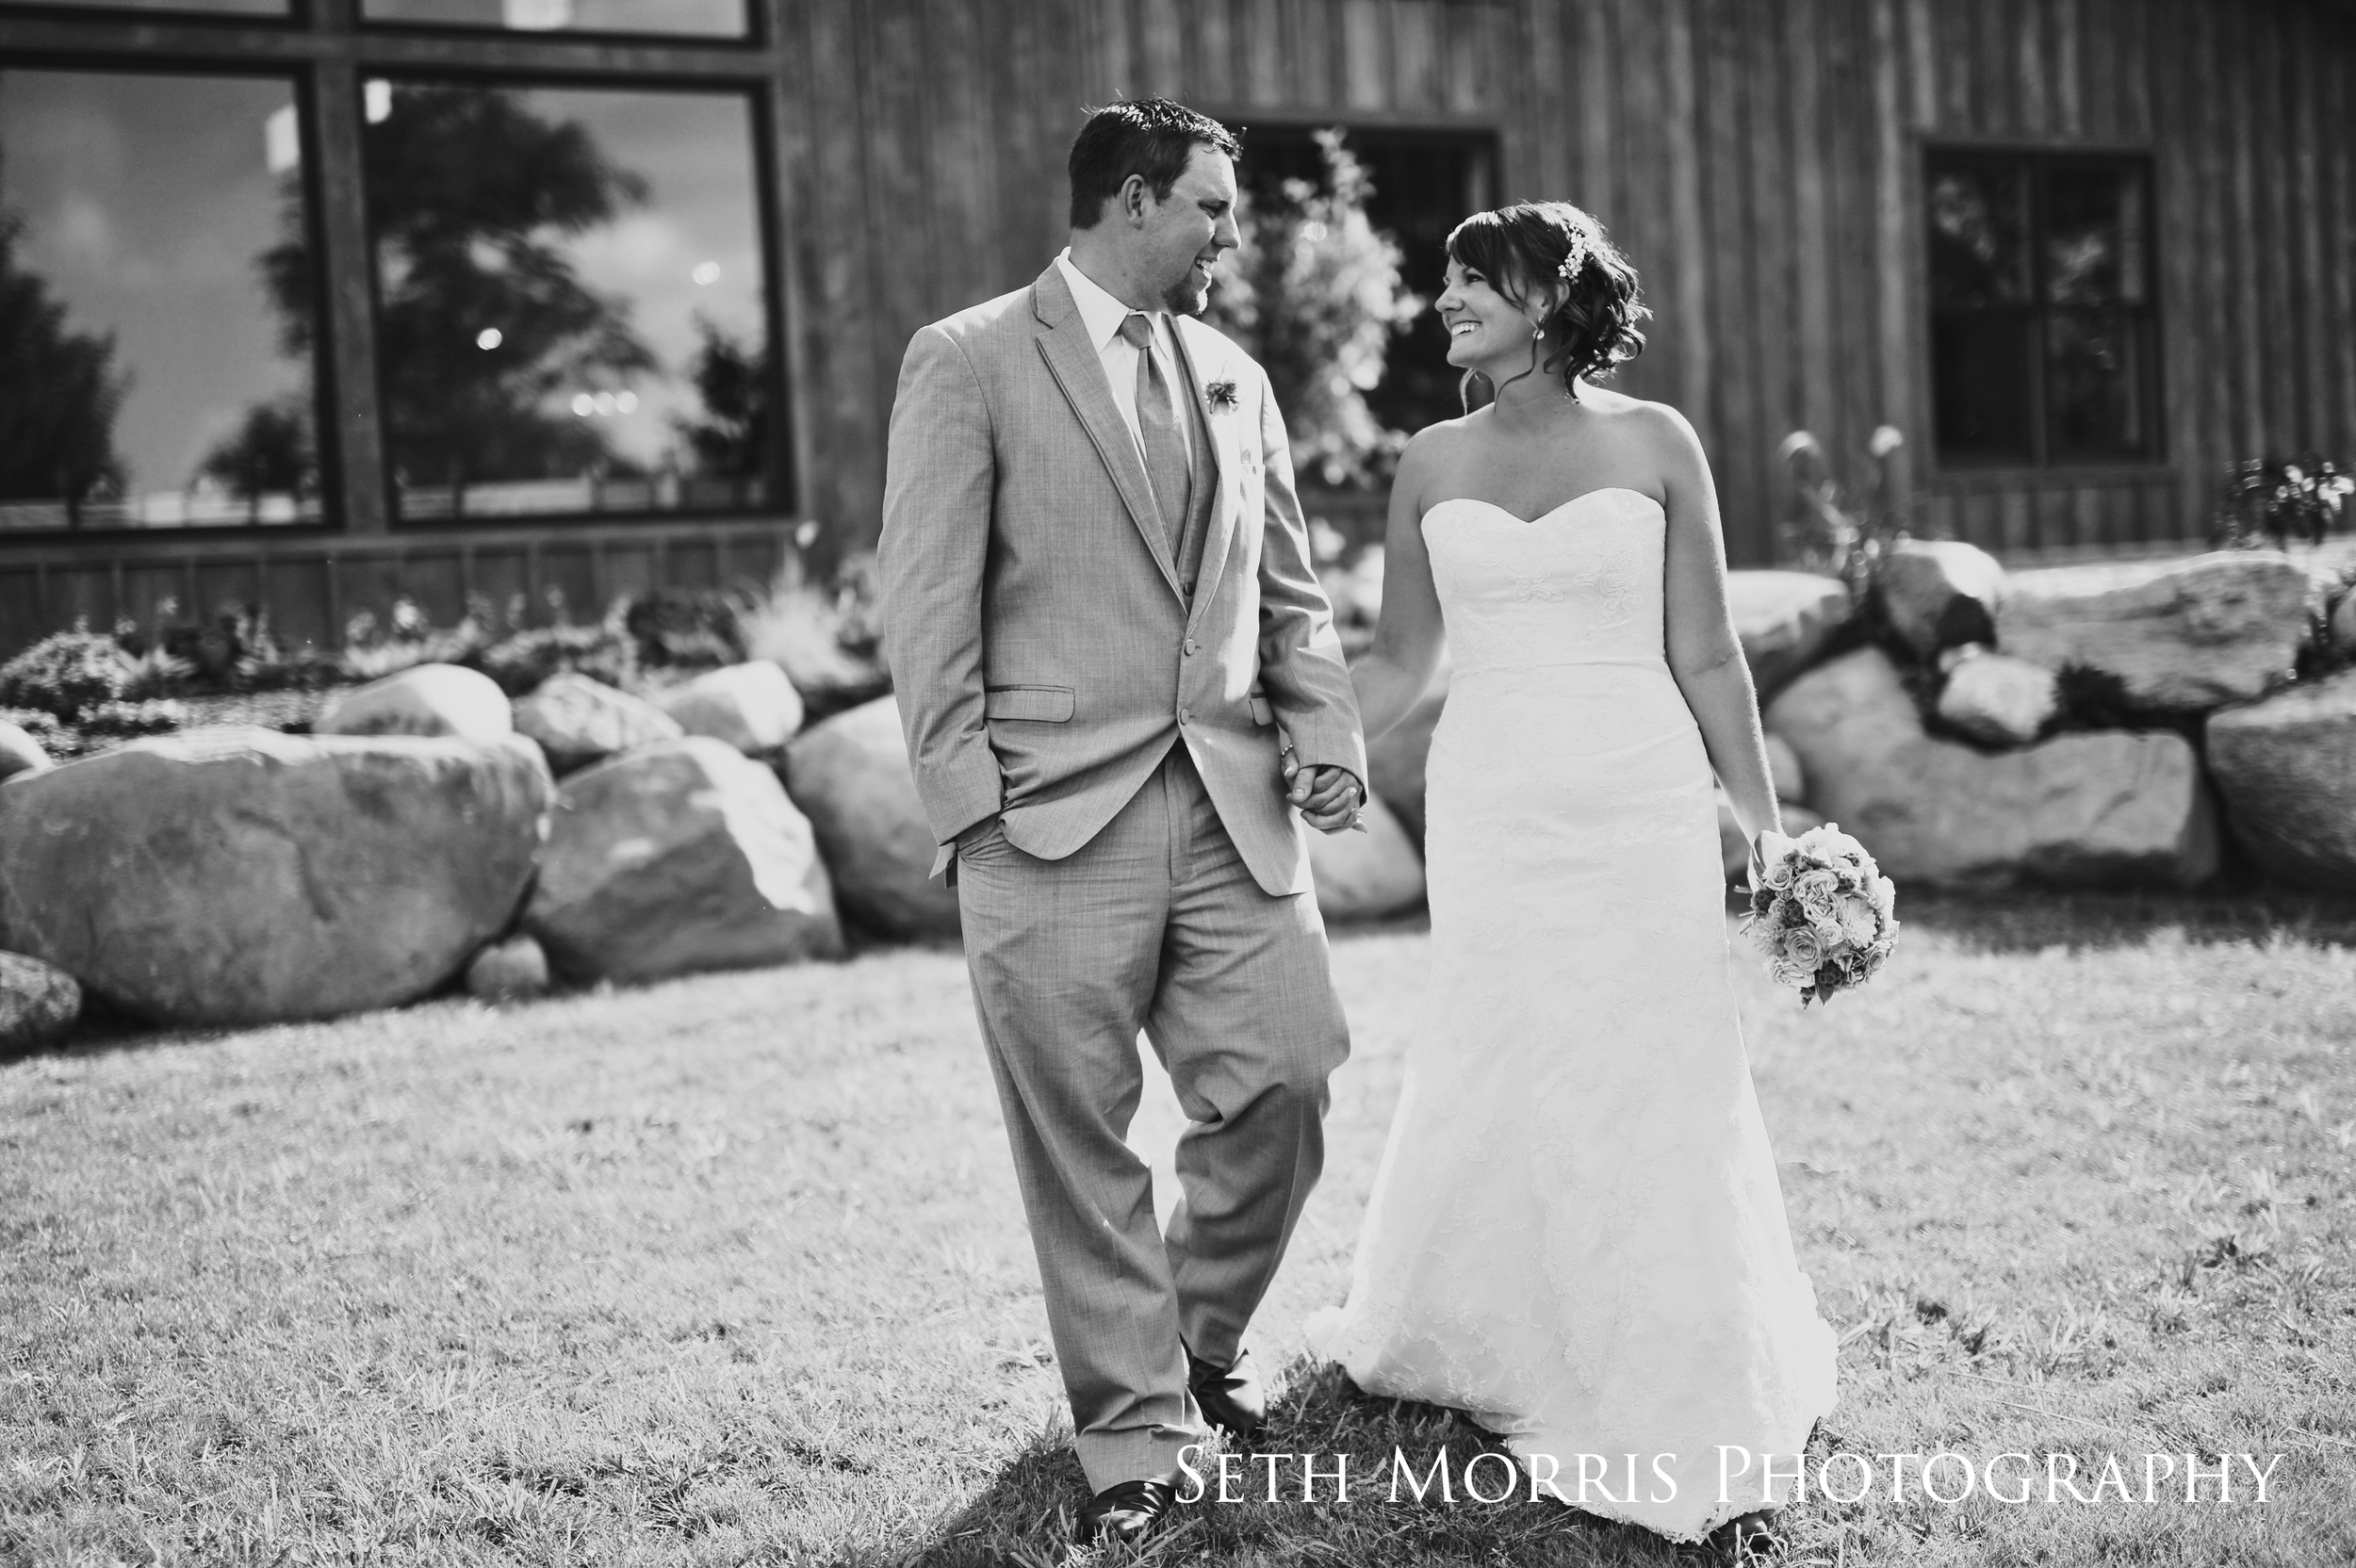 hornbaker-barn-wedding-photo-princeton-photographer-51.jpg